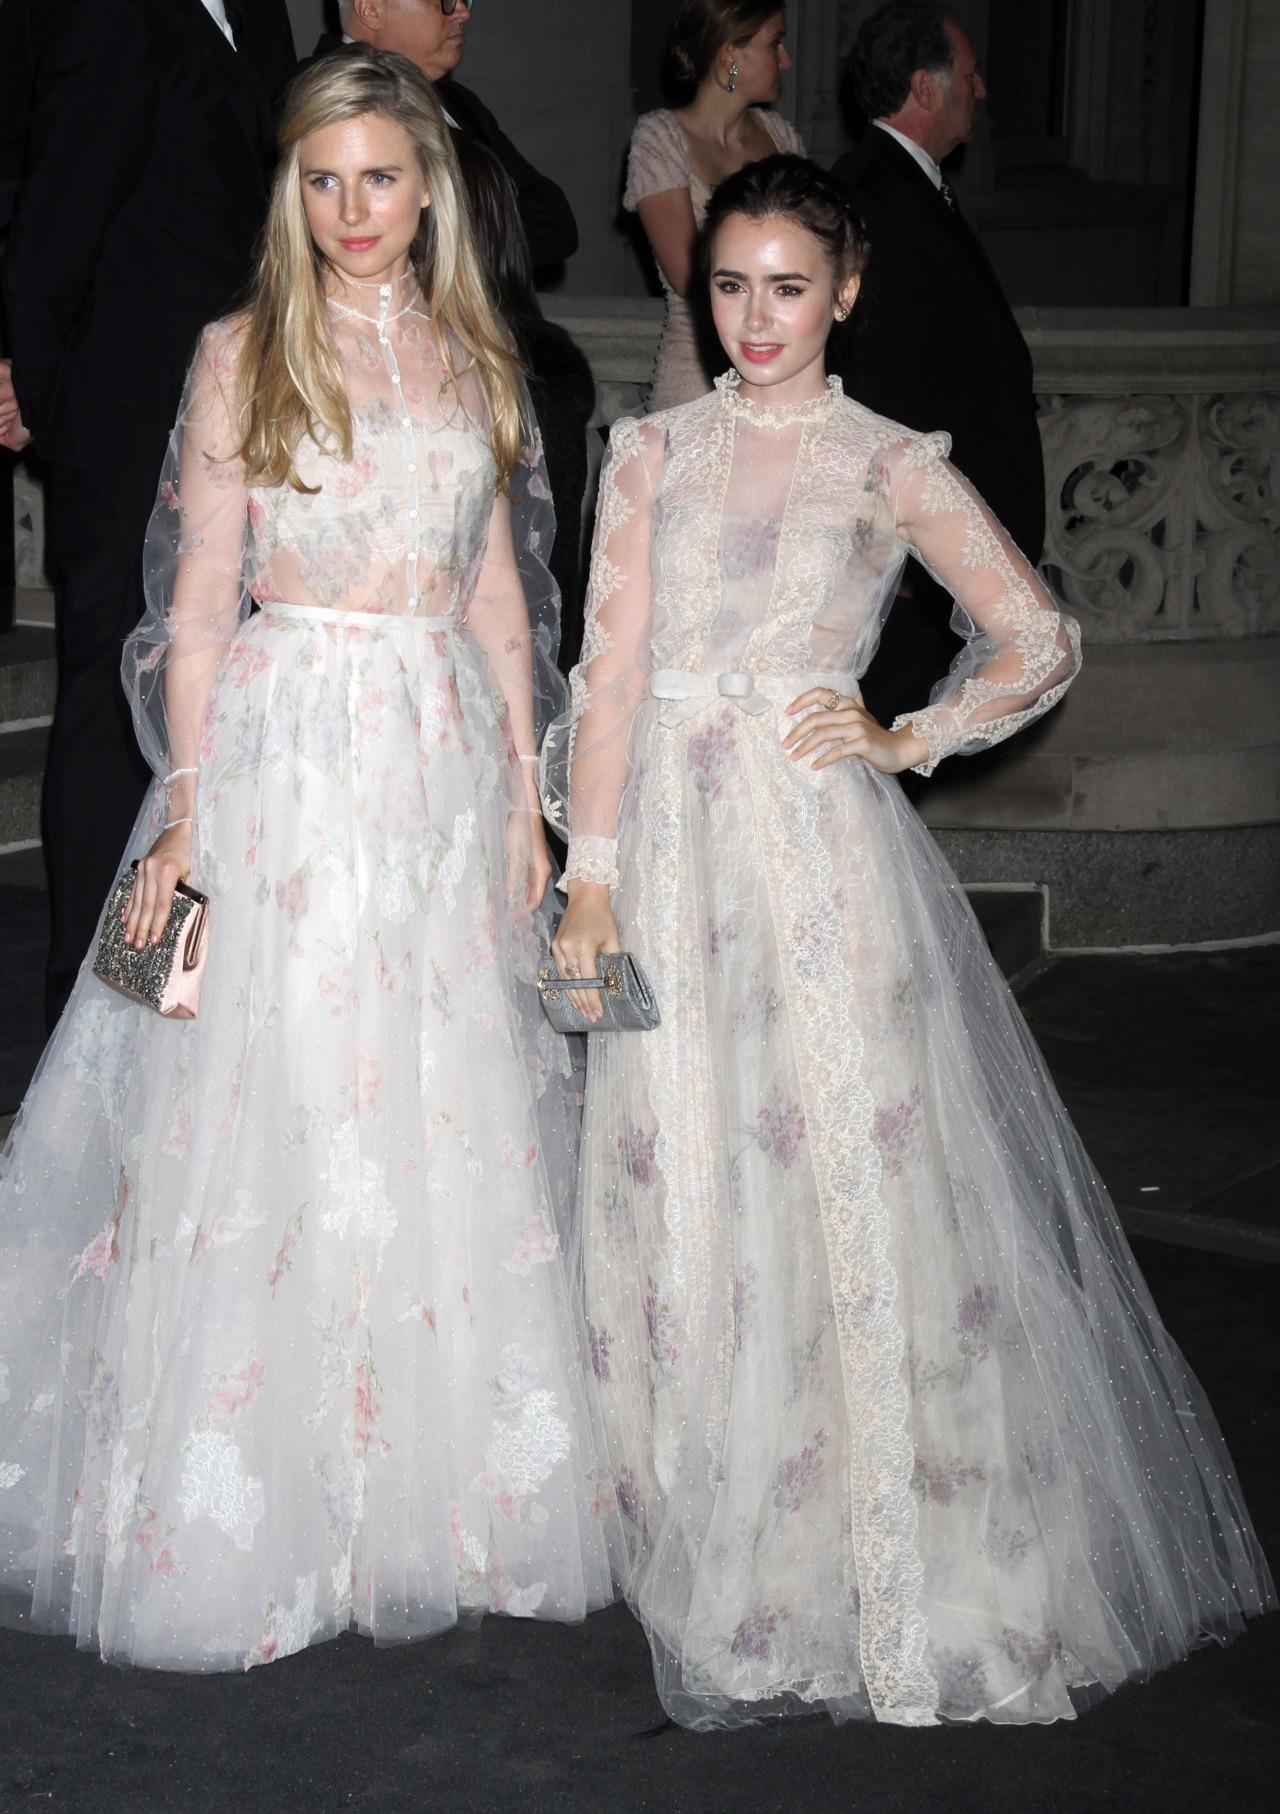 suicideblonde:  Brit Marling and Lily Collins at the Met Gala afterparty, May 7th Seeing two of these Valentino dresses together is to fully appreciate the beauty of this collection.  (thanks to everyone who let me know who Brit Marling is!)